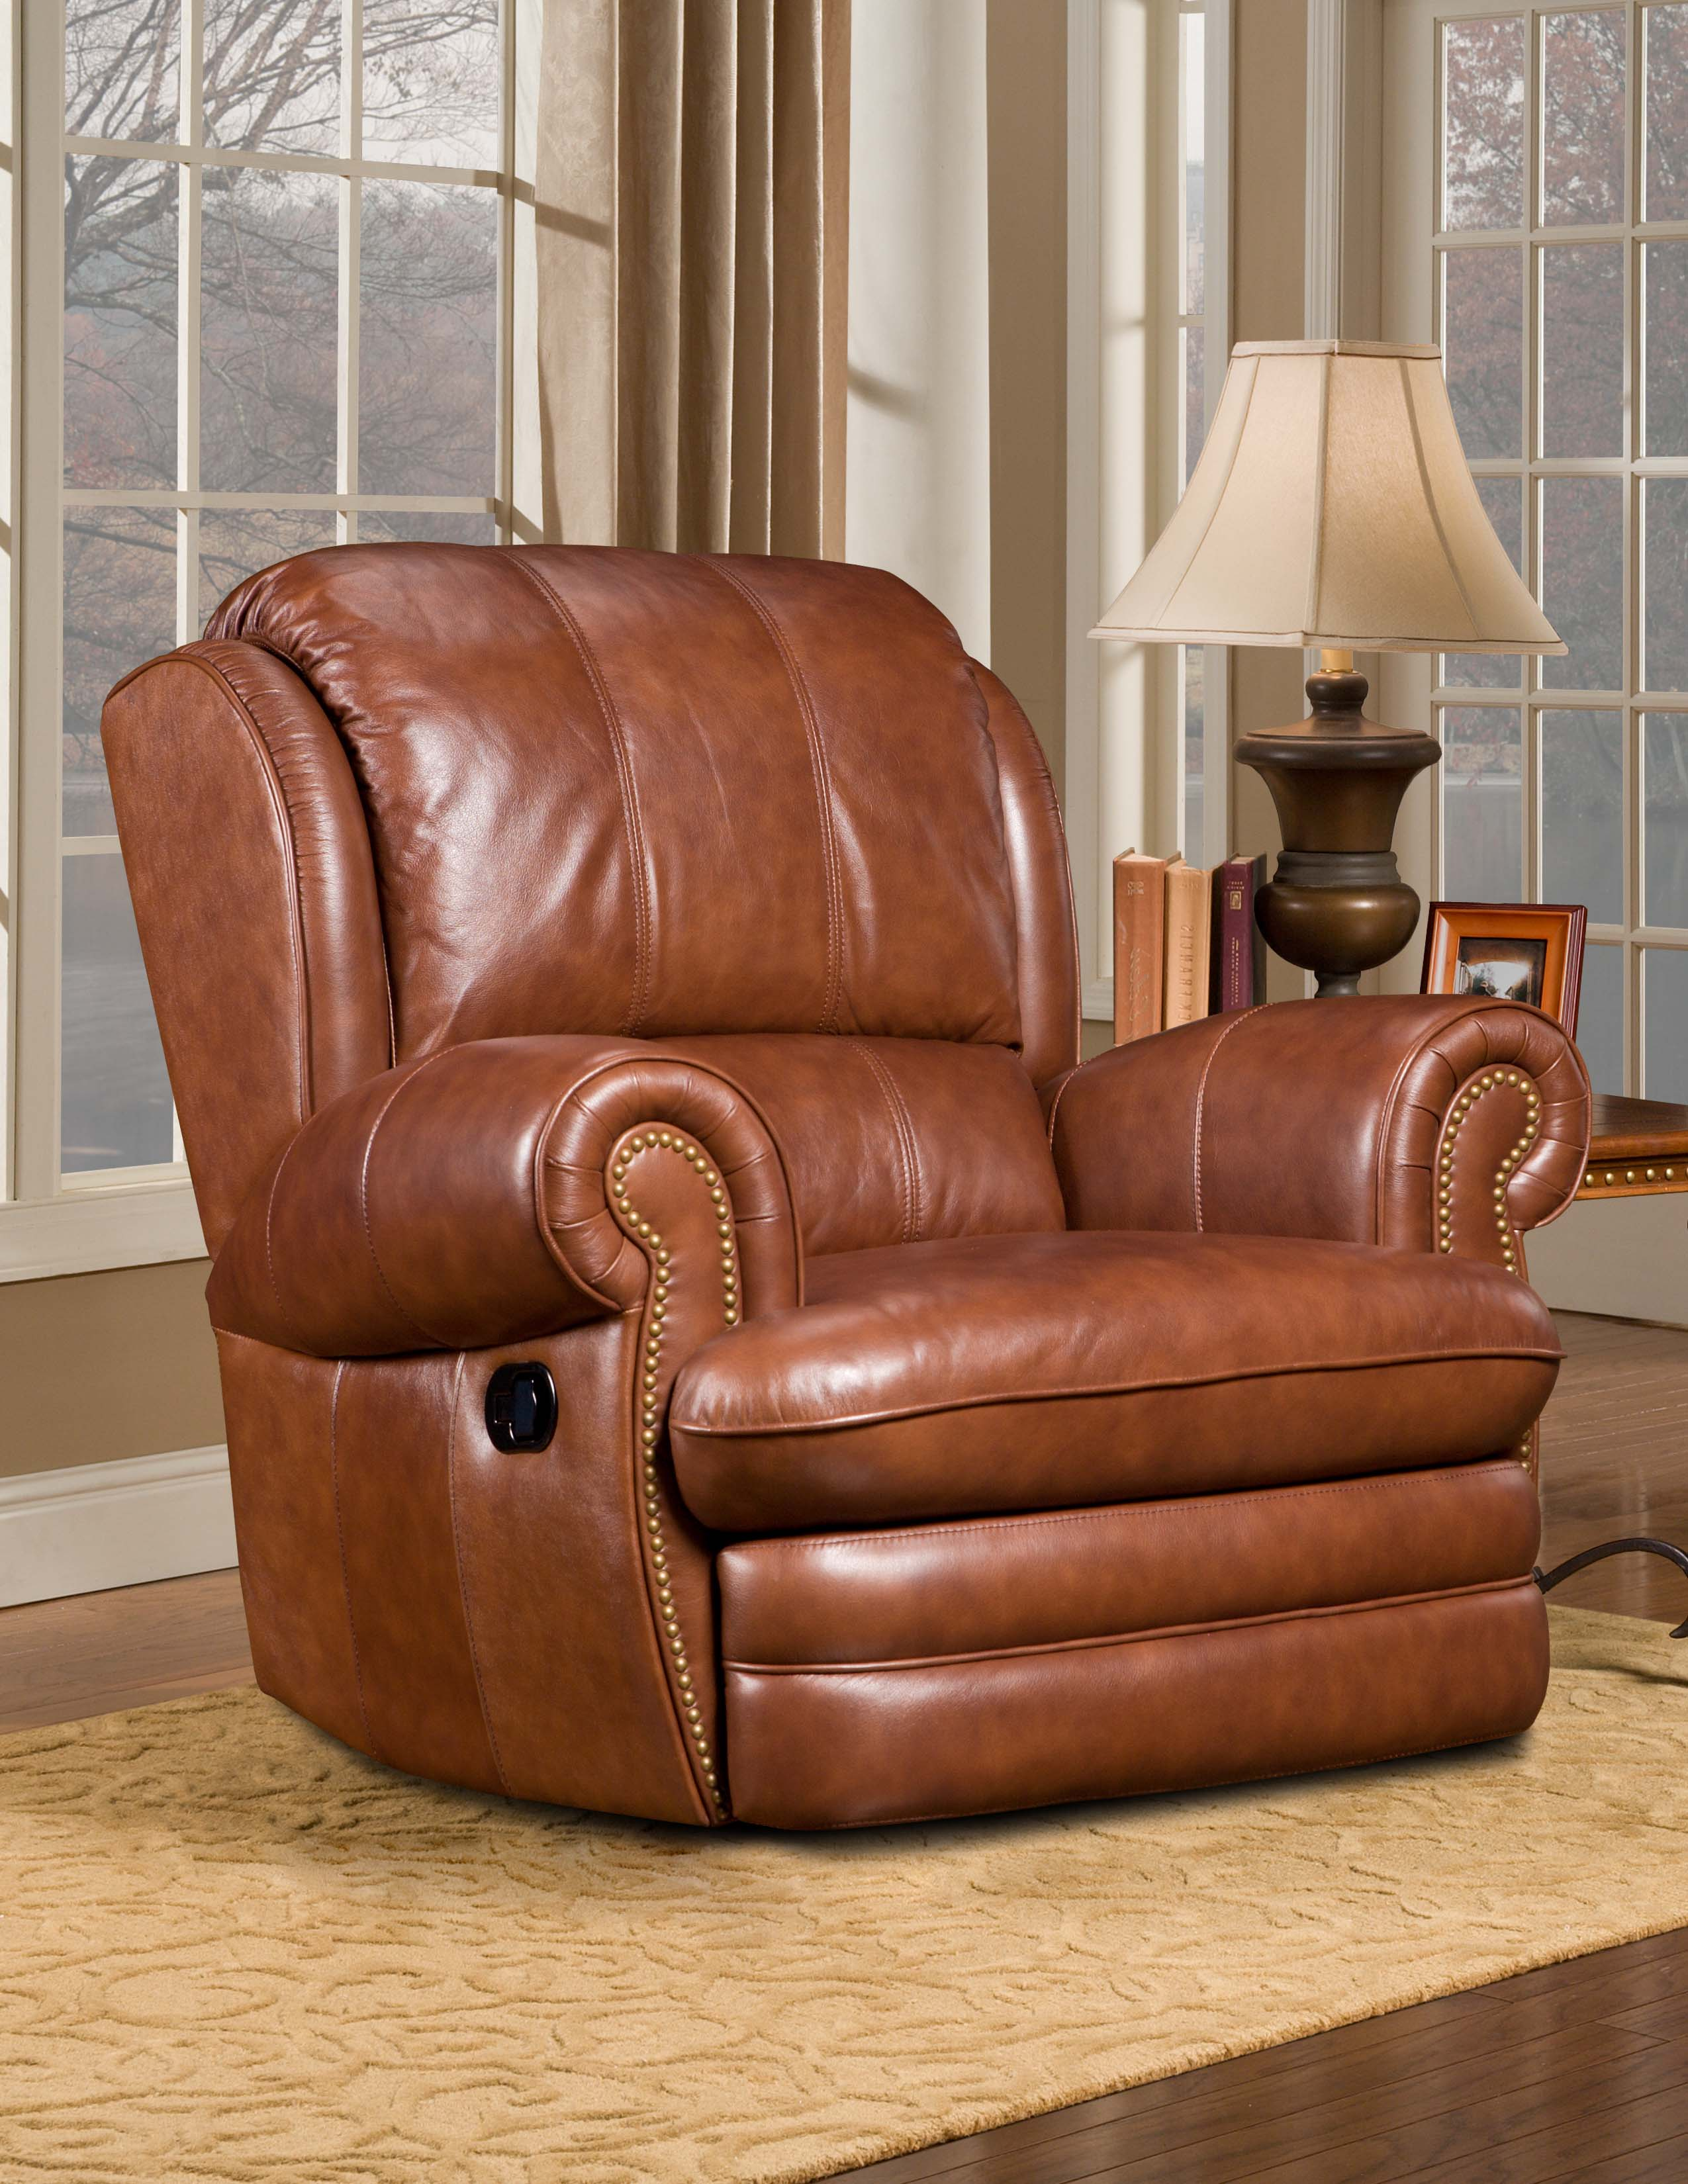 willford brandy leather swivel rocker recliner free shipping